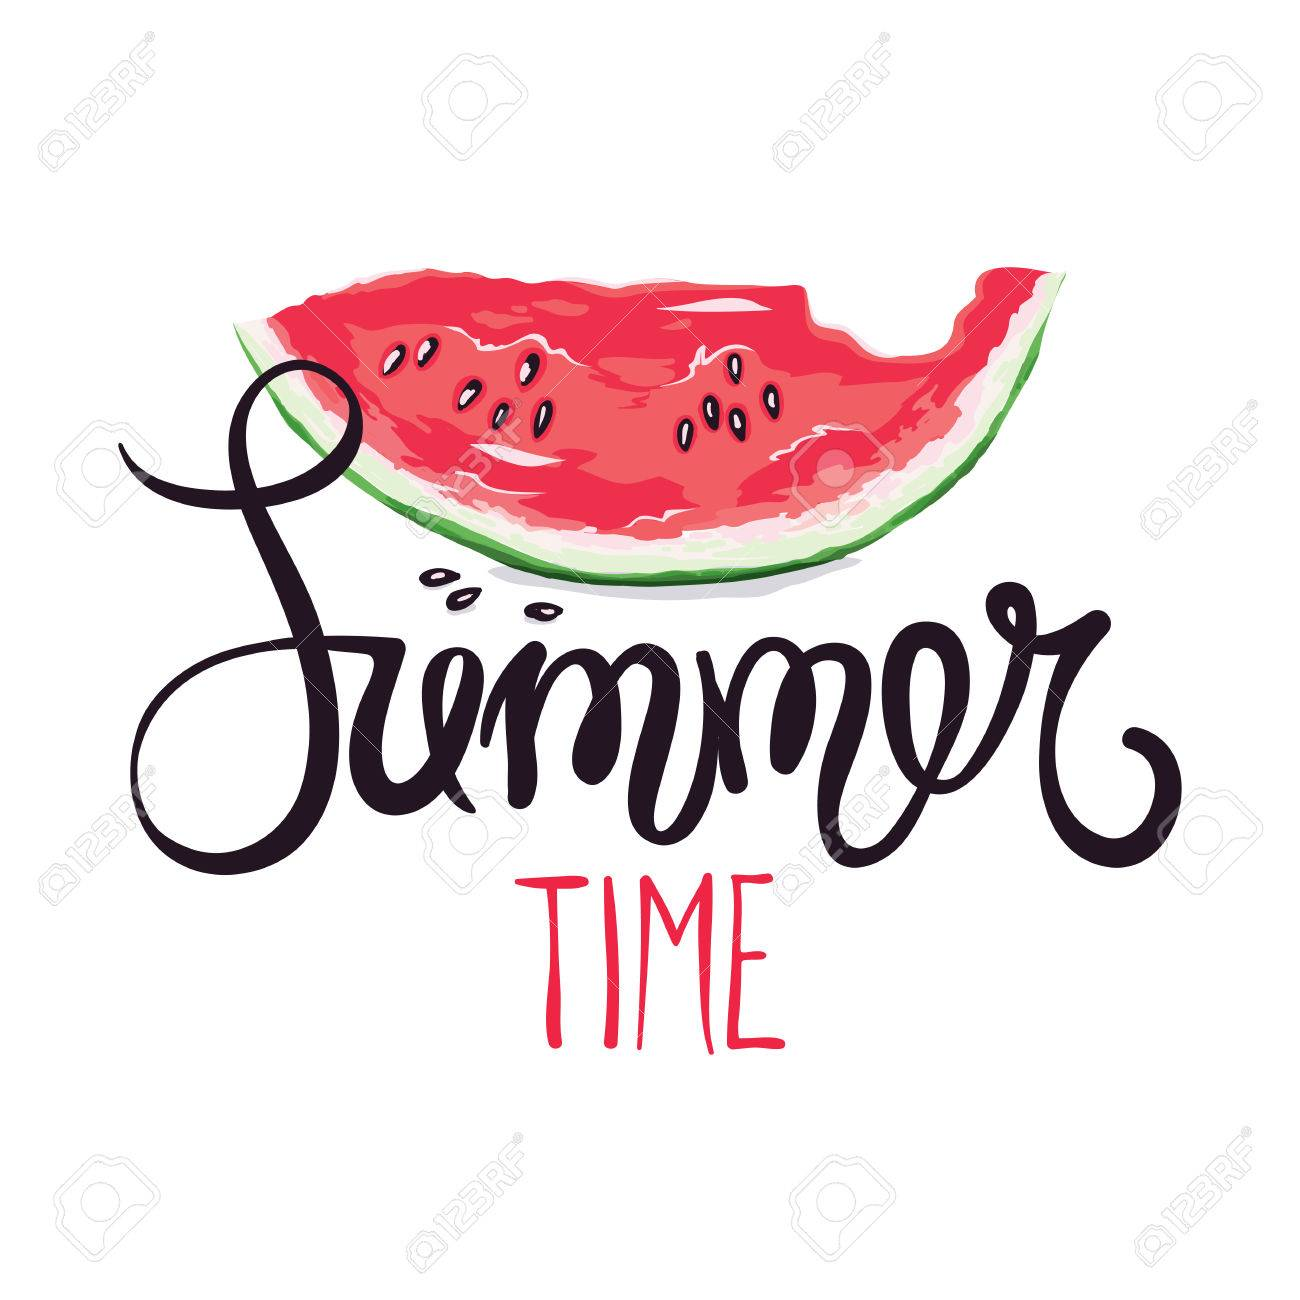 555fe2f07263 Funny summer hand drawing calligraphy  Vector illustration with slices of  watermelon Stock Vector - 58537363